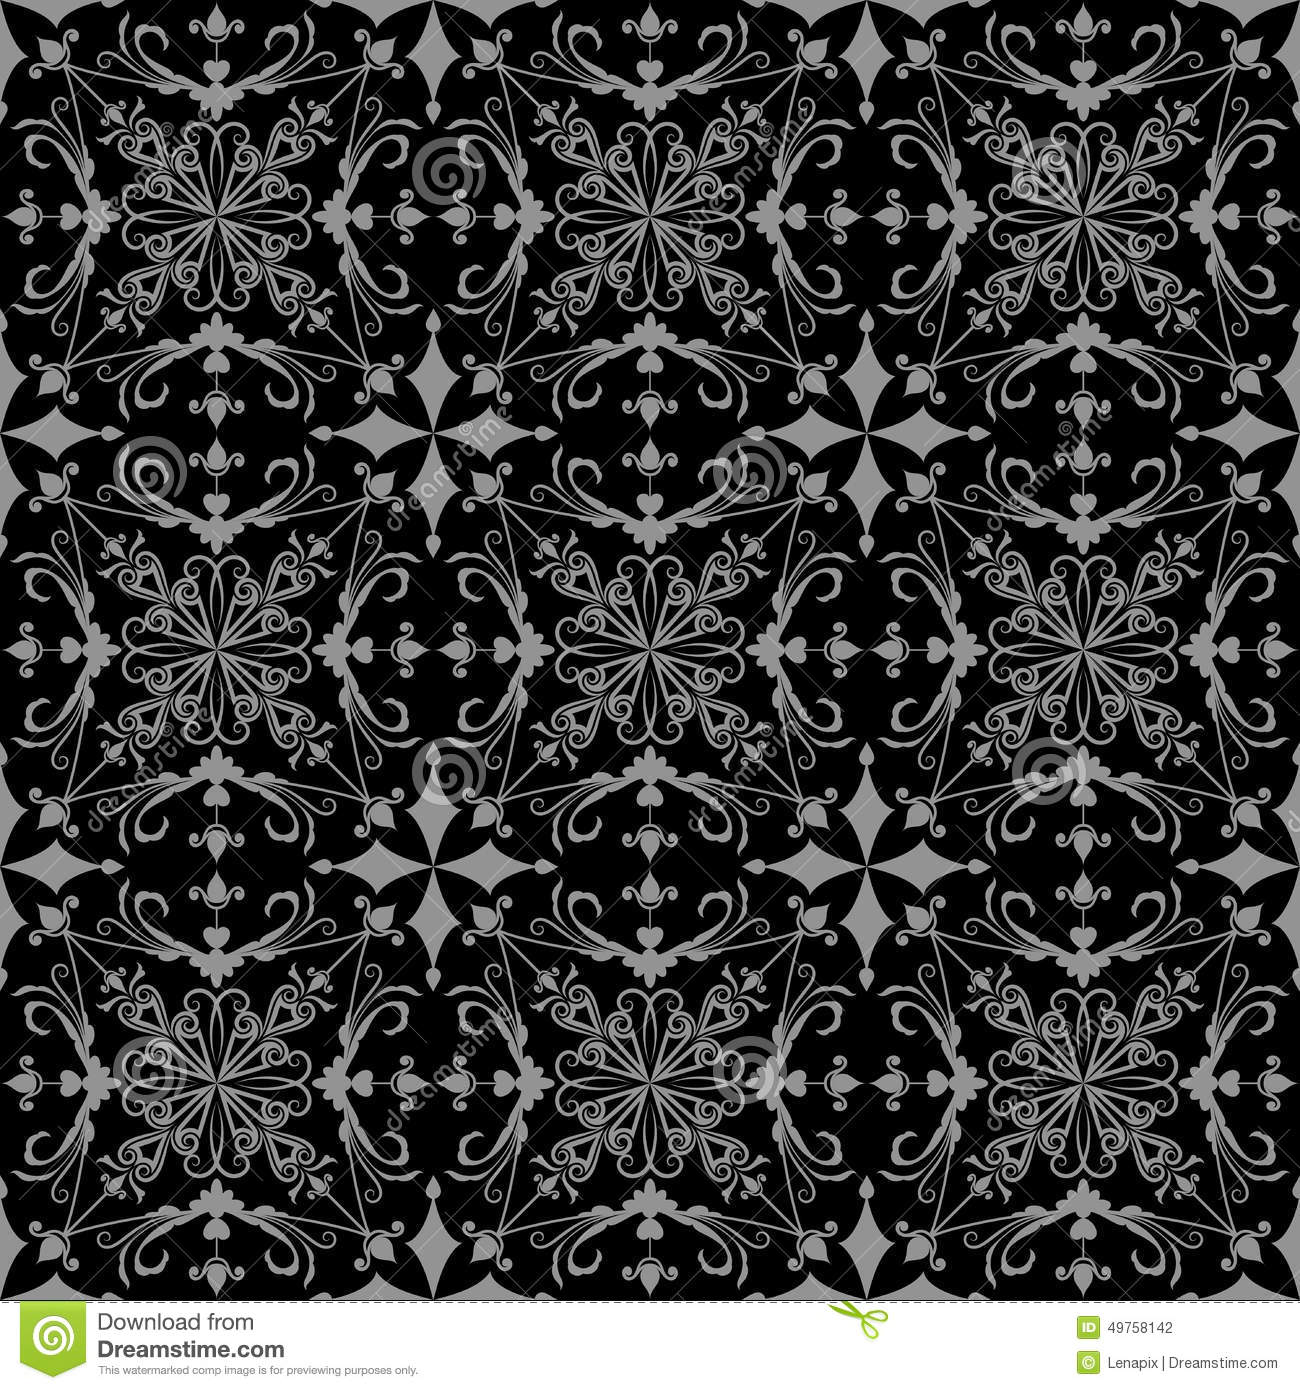 You searched for: pattern black grey! Etsy is the home to thousands of handmade, vintage, and one-of-a-kind products and gifts related to your search. No matter what you're looking for or where you are in the world, our global marketplace of sellers can help you find unique and affordable options. Let's get started!